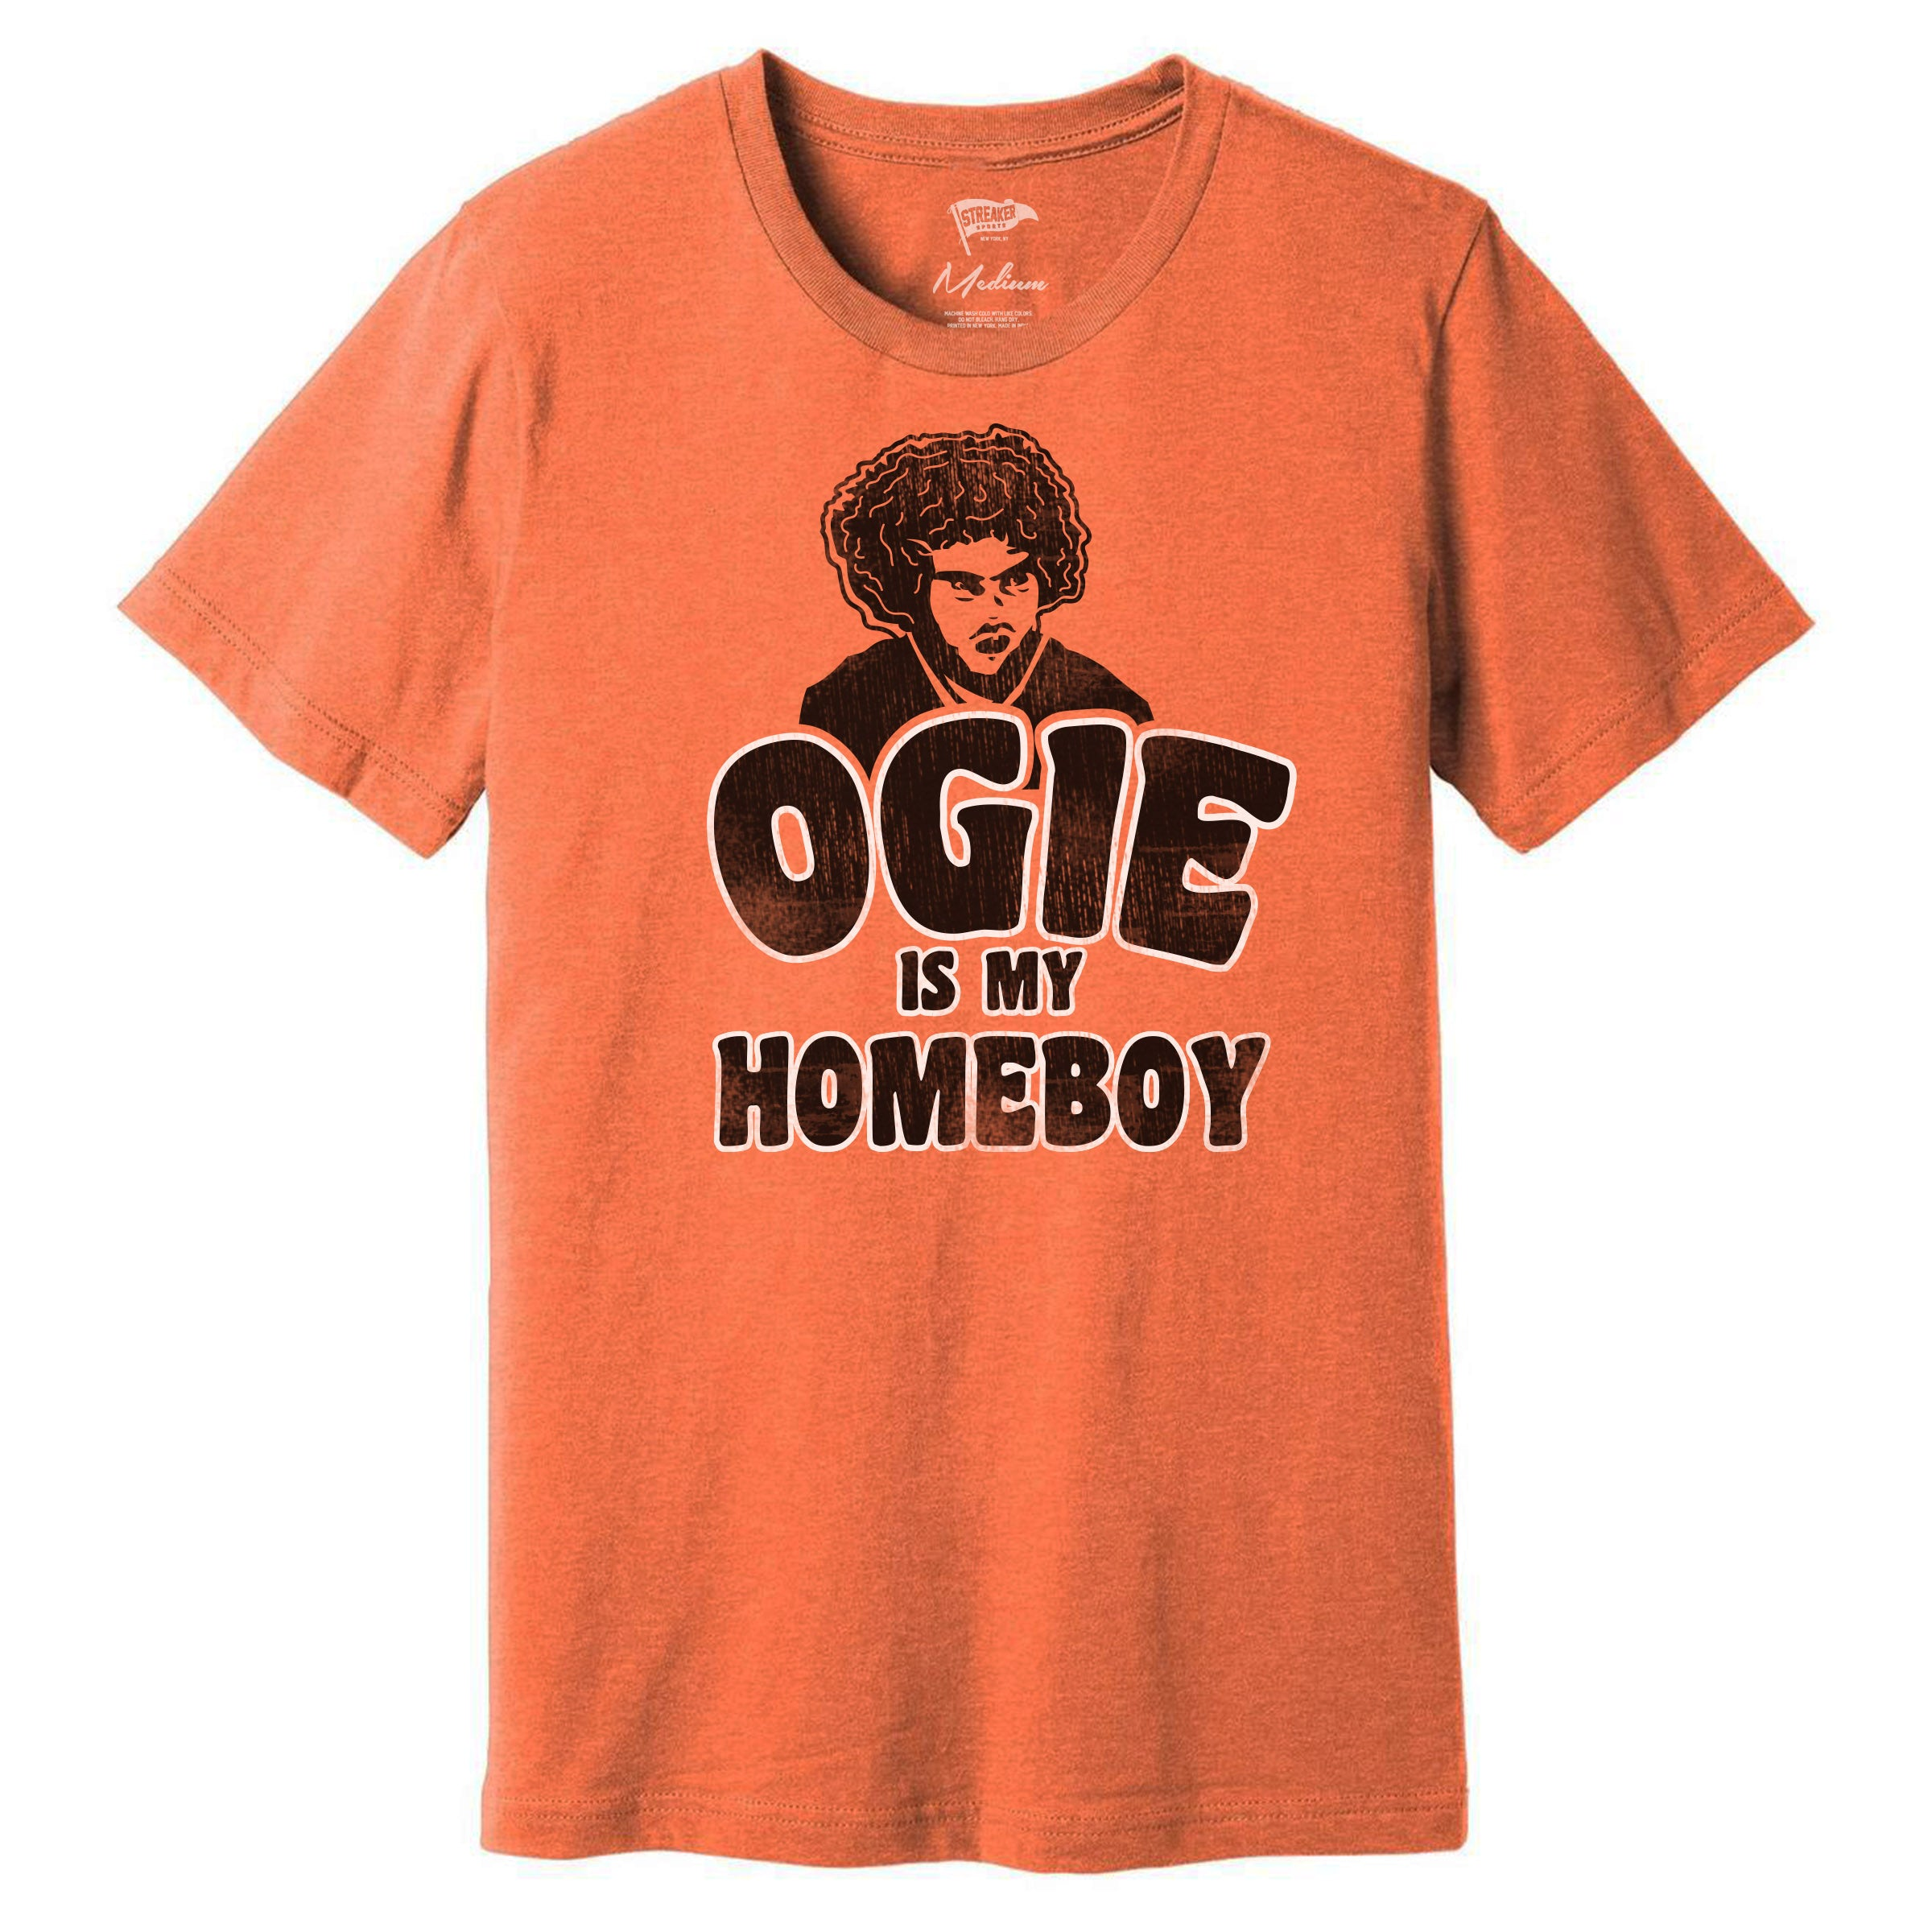 Ogie Is My Homeboy Tee - Streaker Sports